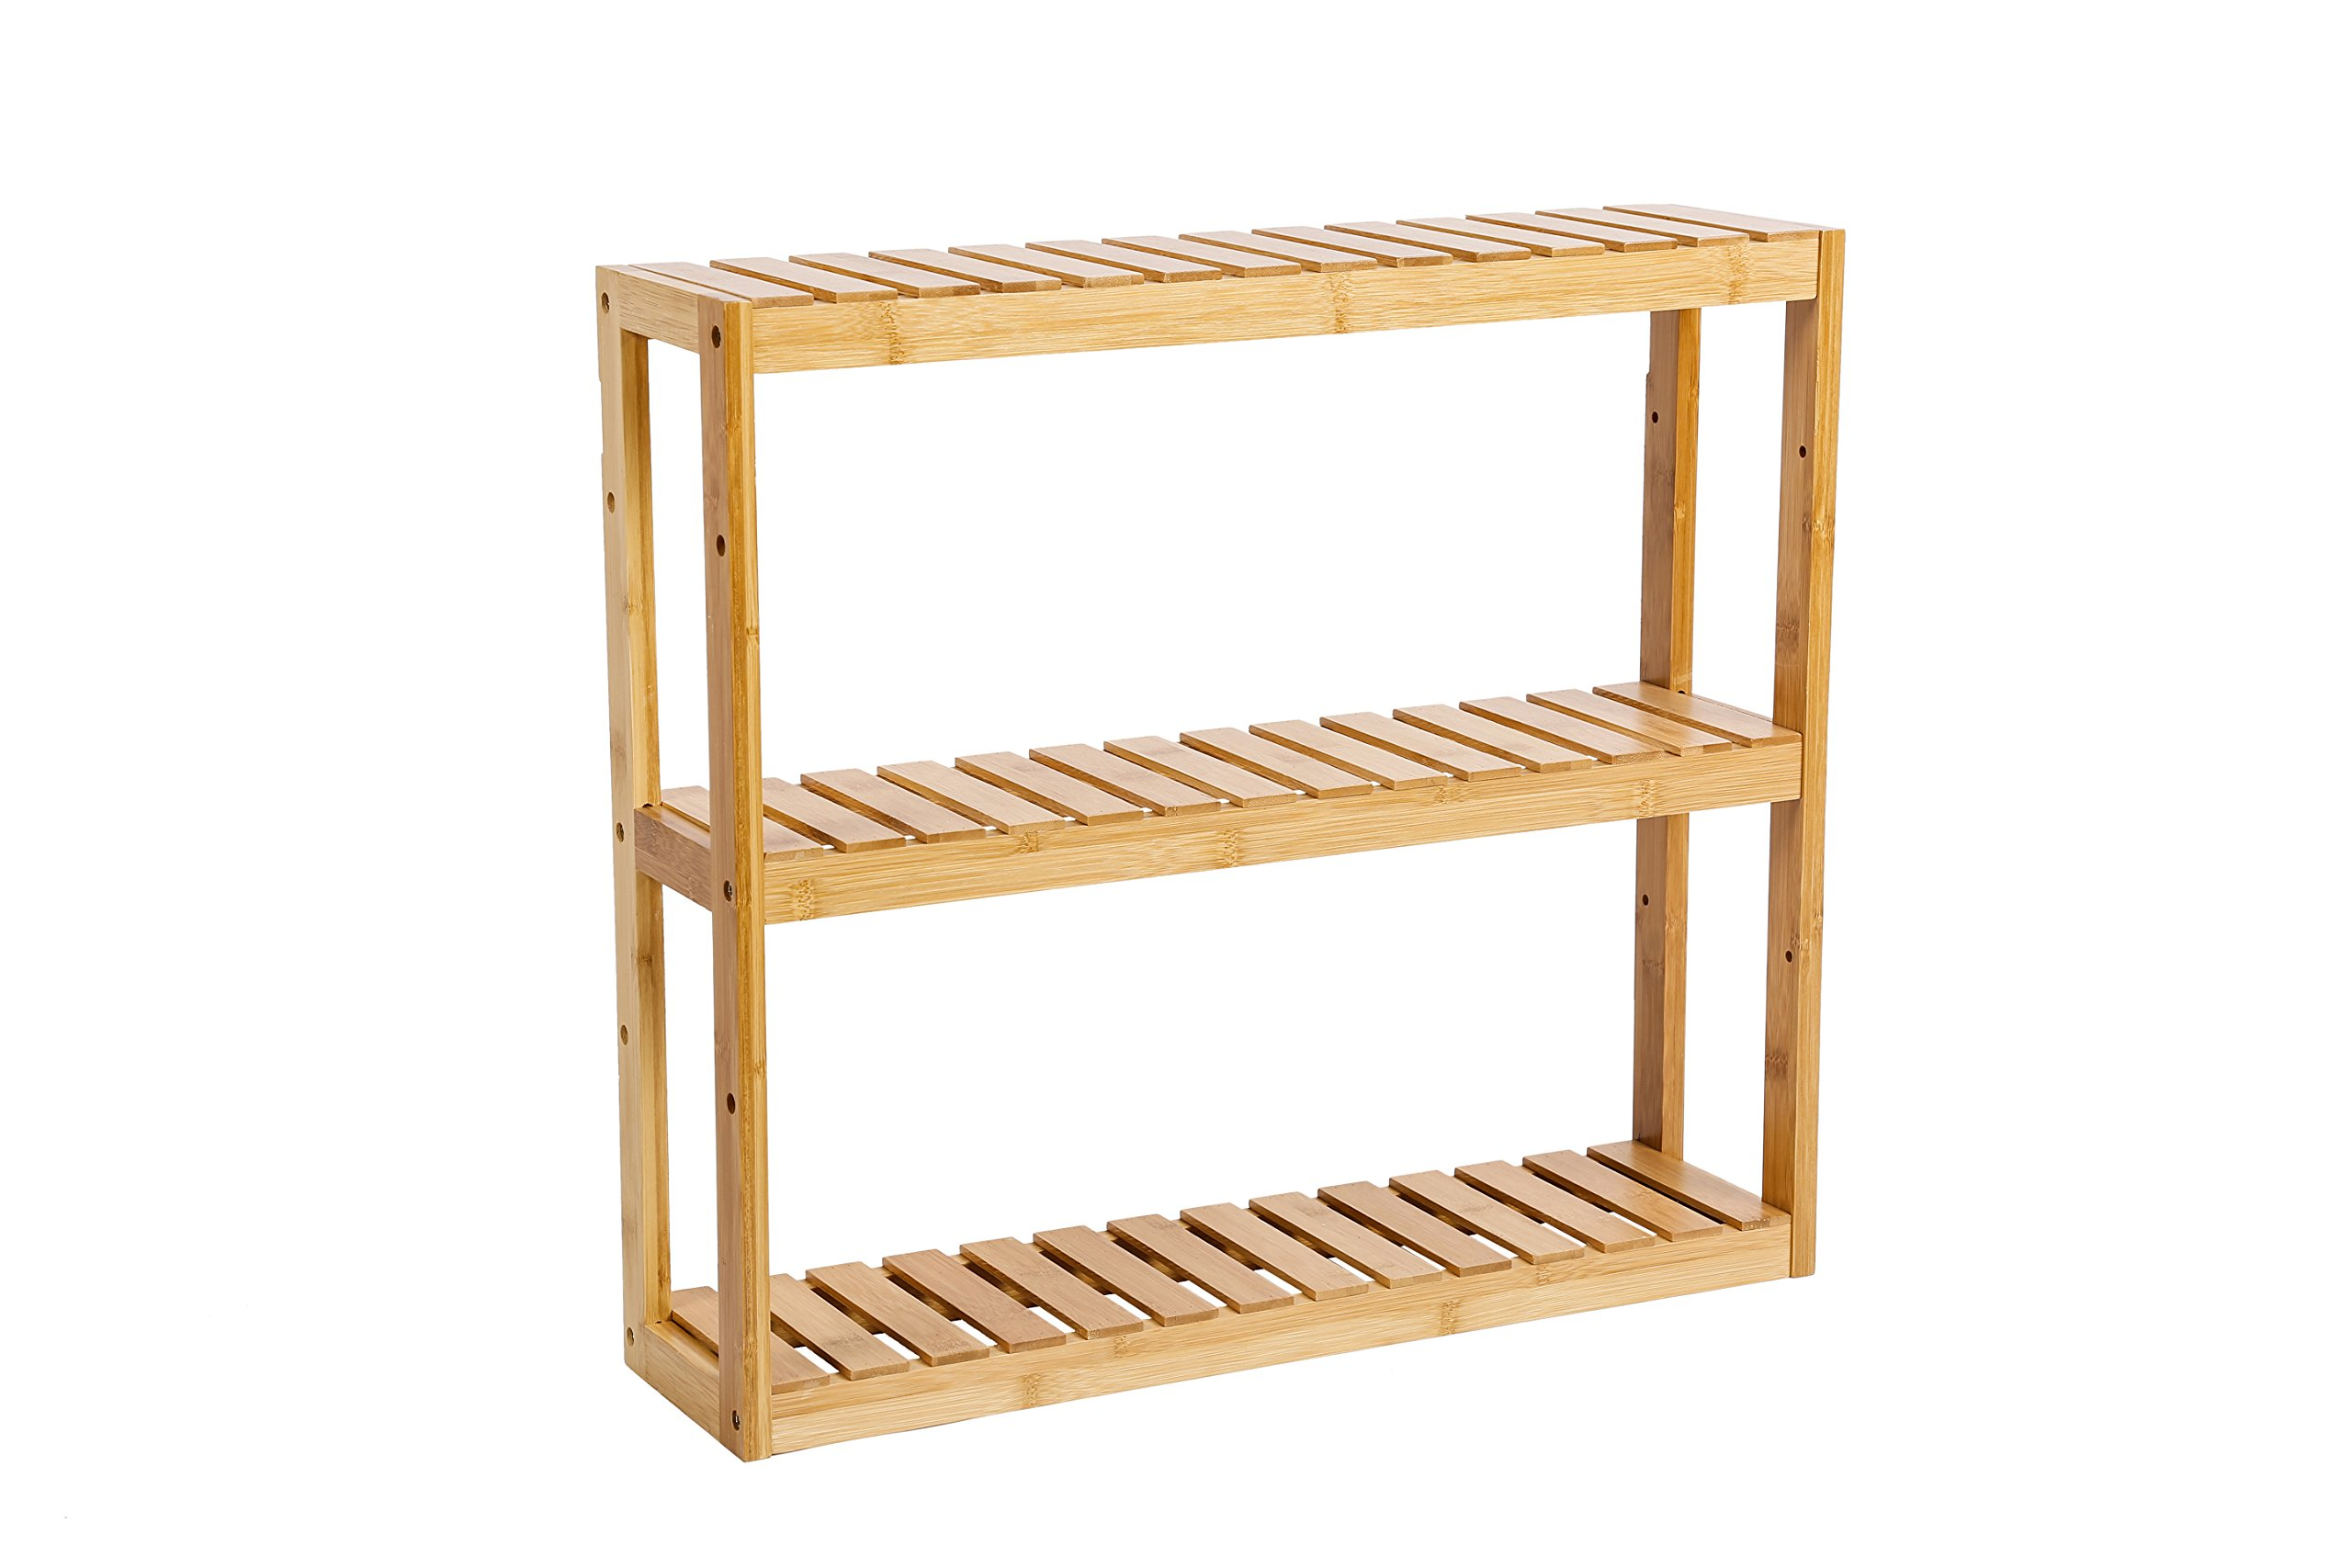 Zhuoyue Wall Mounted Bathroom Organizer Rack with 3 Shelves